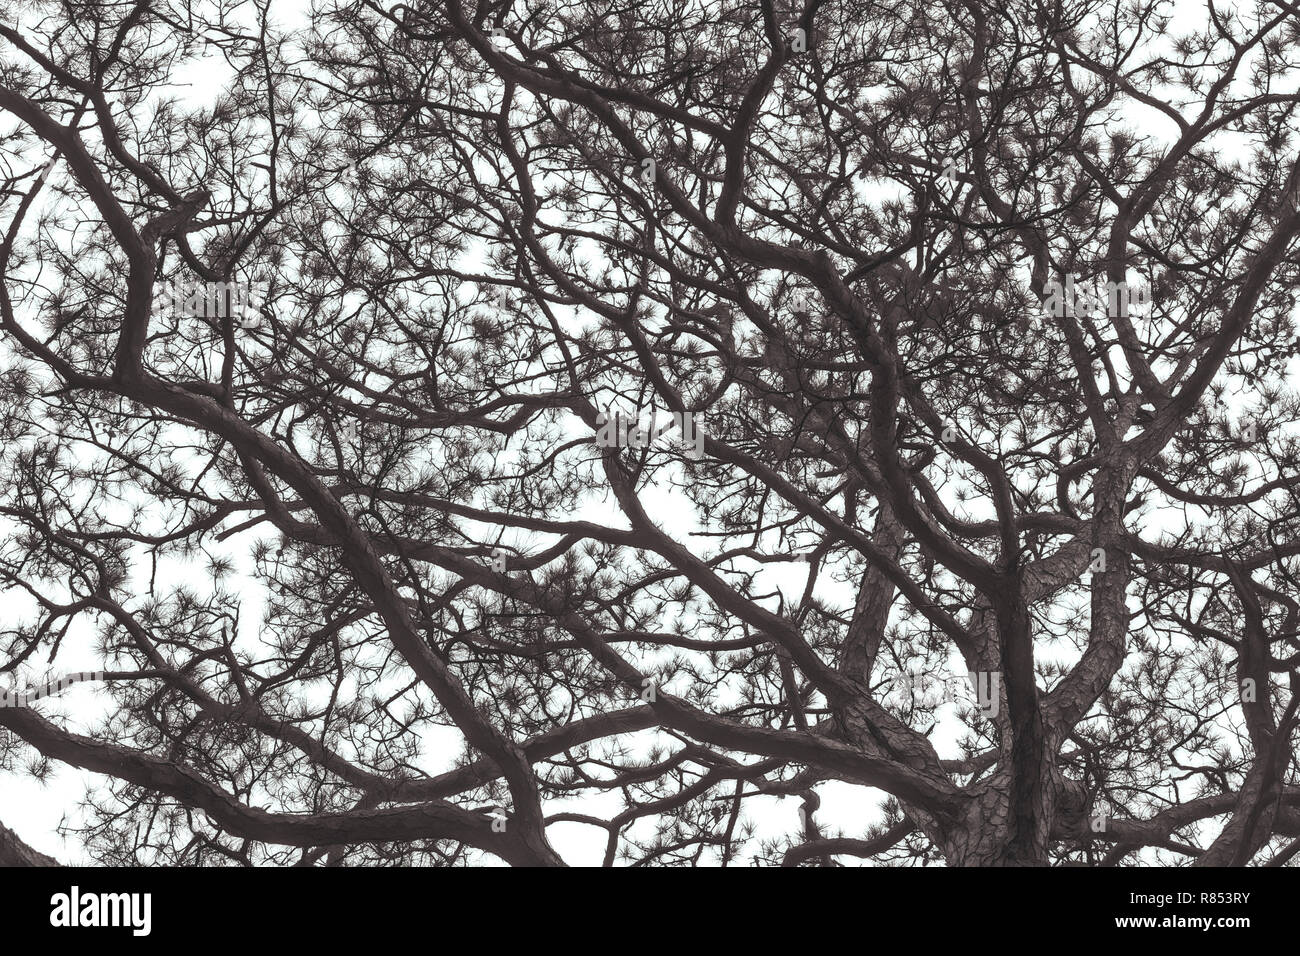 Abstract network of tree branches and leaves against a bright sky - Stock Image